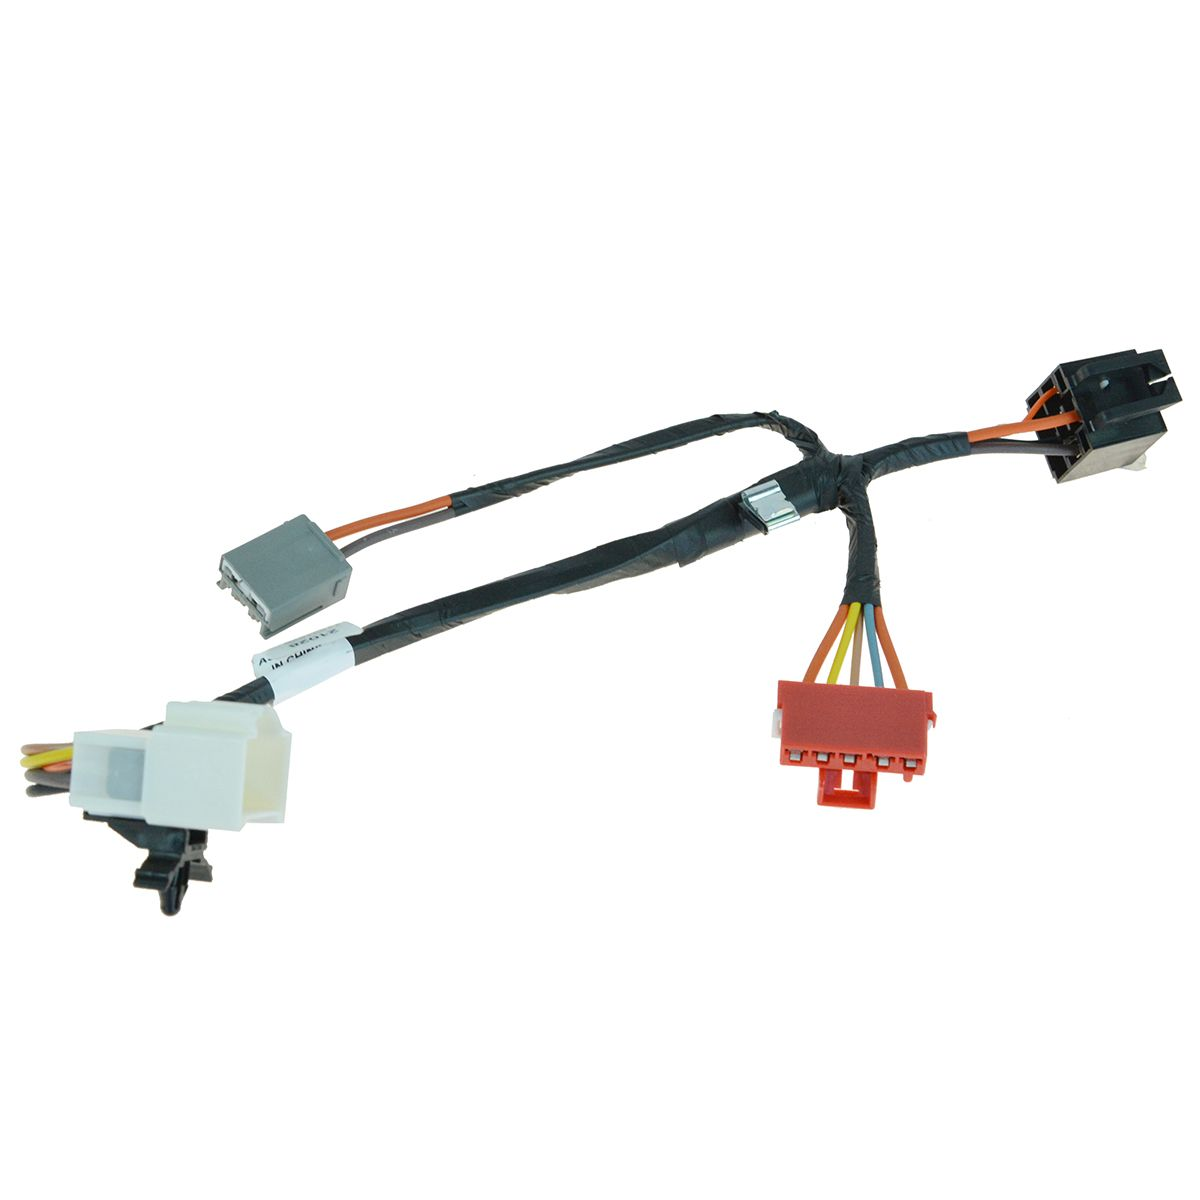 hight resolution of oem blower motor resistor wiring harness pigtail connector for h3 solstice sky